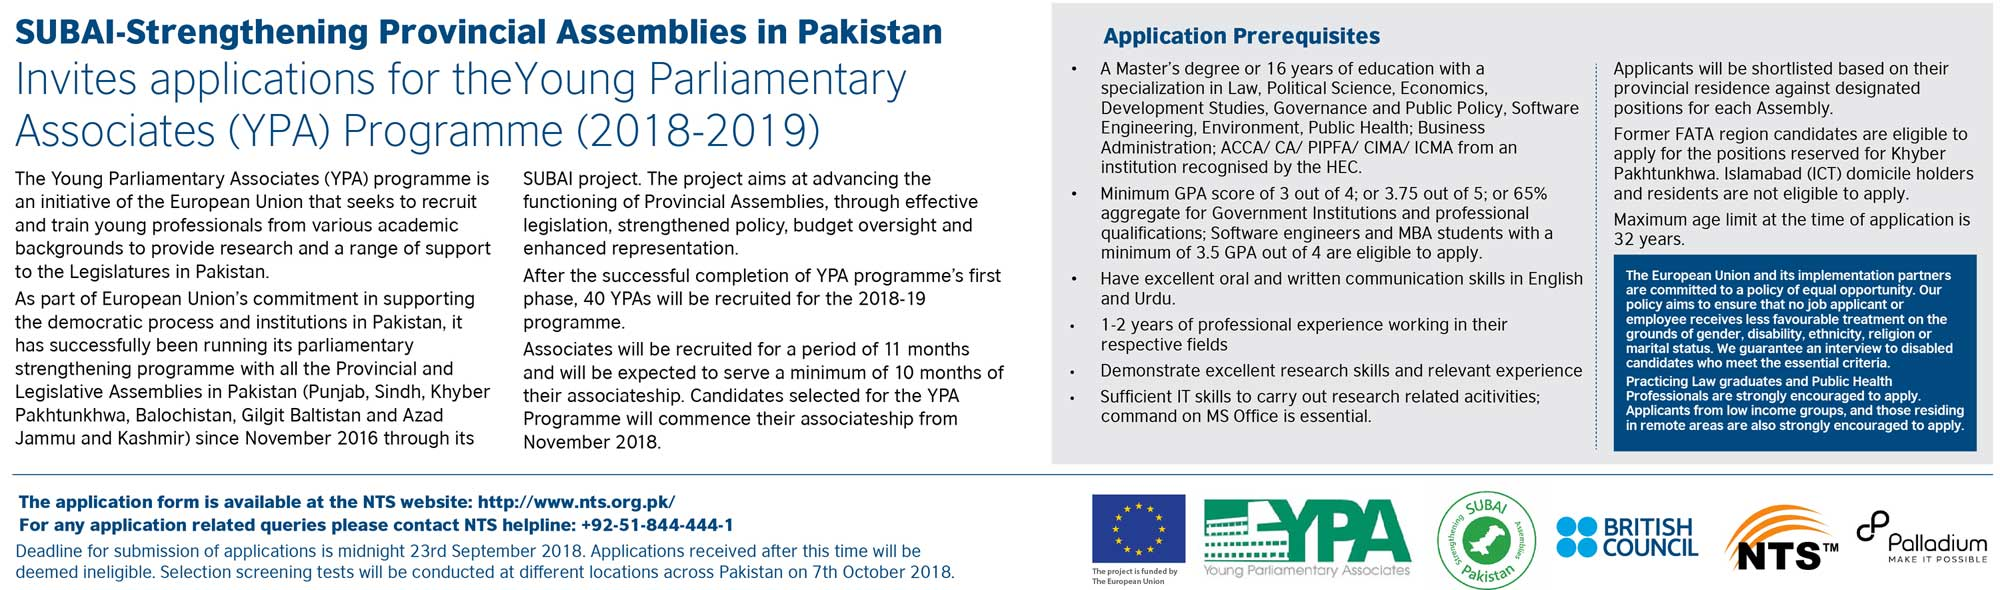 Young Parliamentary Associates YPA Programme NTS Test Results 2018-19